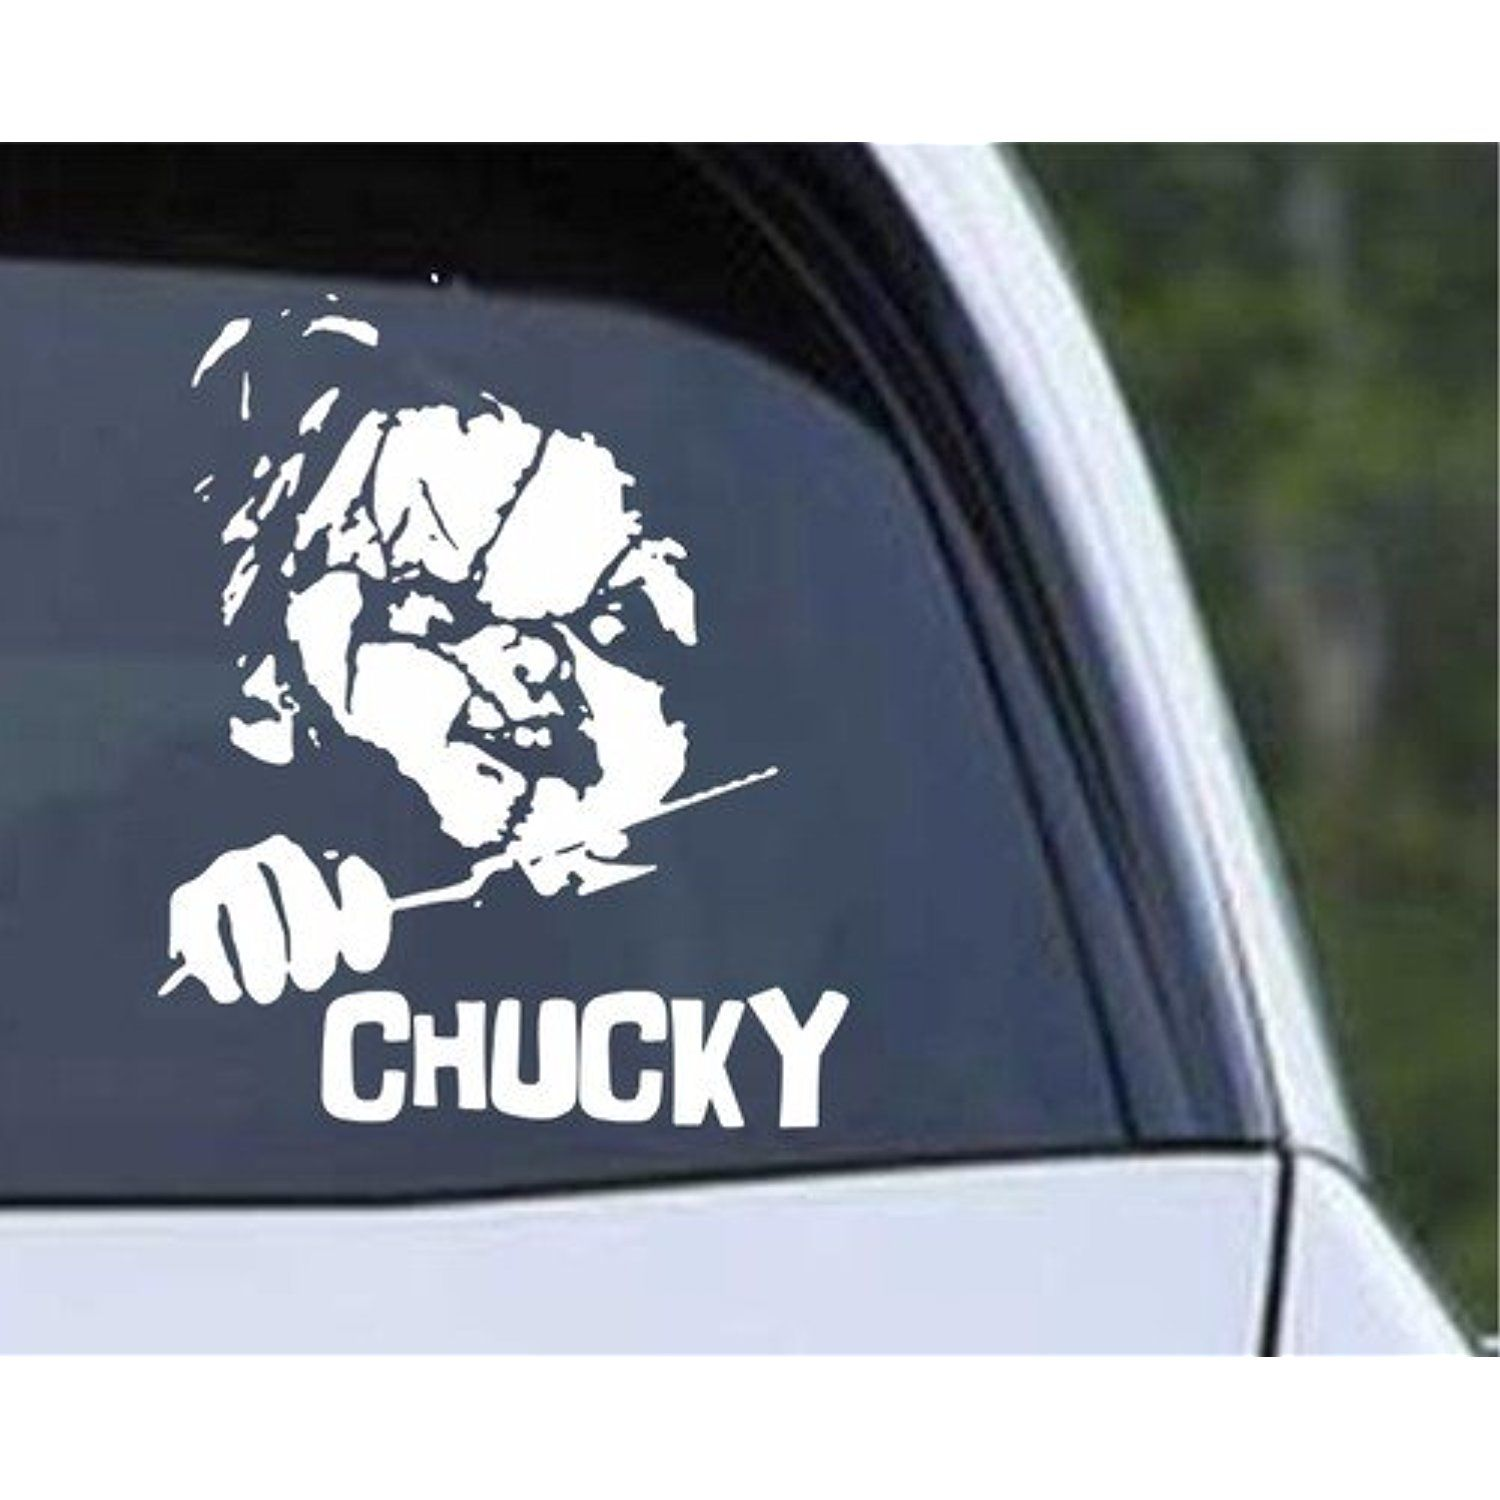 Chucky 6 White Car Truck Vinyl Decal Art Wall Sticker Usa Classic Scary Movies Child S Play Badass Hallowe Classic Scary Movies Wall Stickers Usa Scary Movies [ 1500 x 1500 Pixel ]